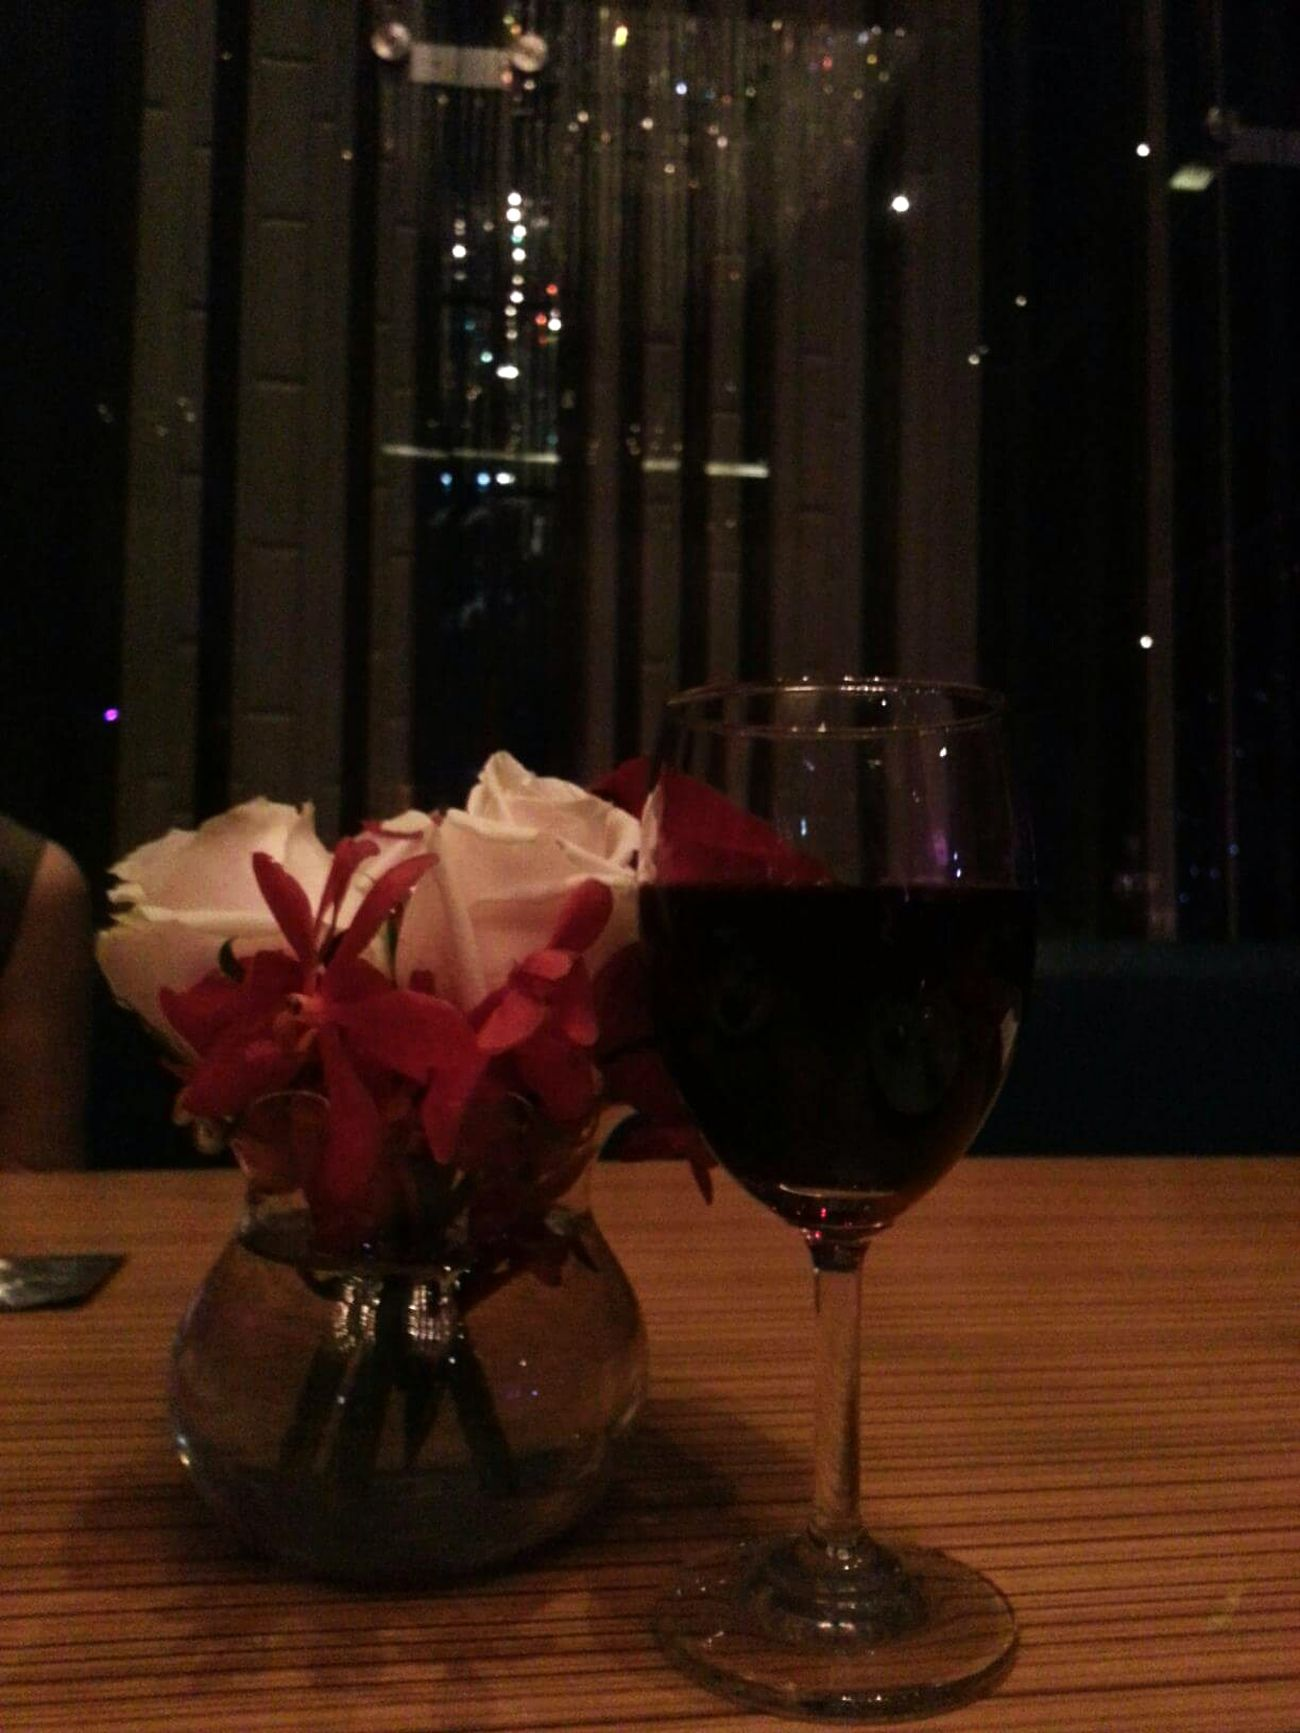 Throwback At The Party Chilling French Wine Enjoying Life Check This Out BKK Silom